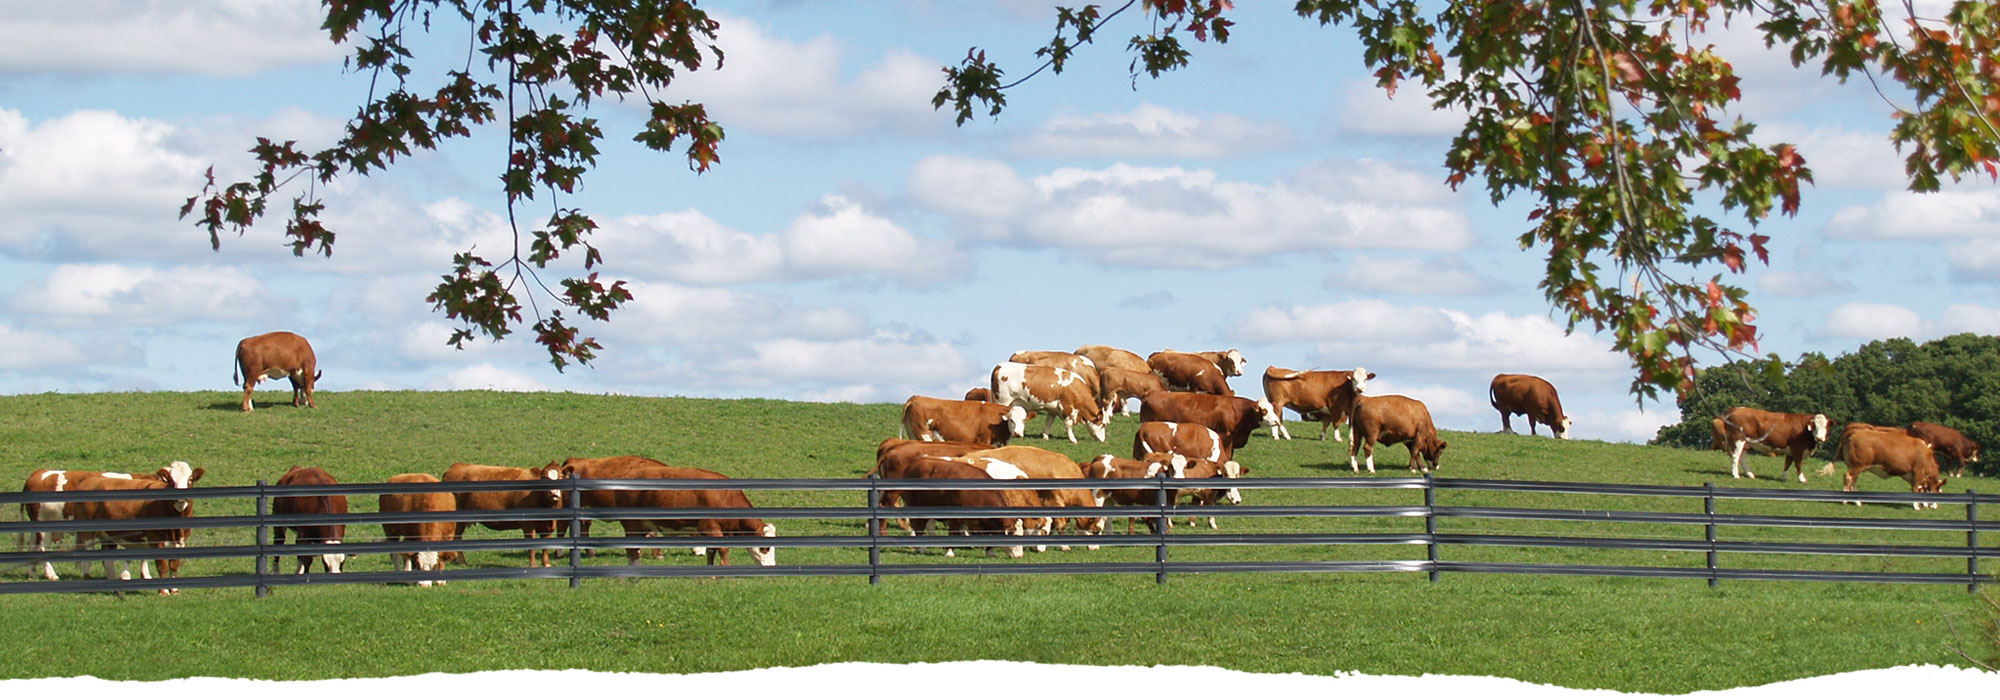 Wide shot of cattle roaming the grass at Freedom Run Farm.